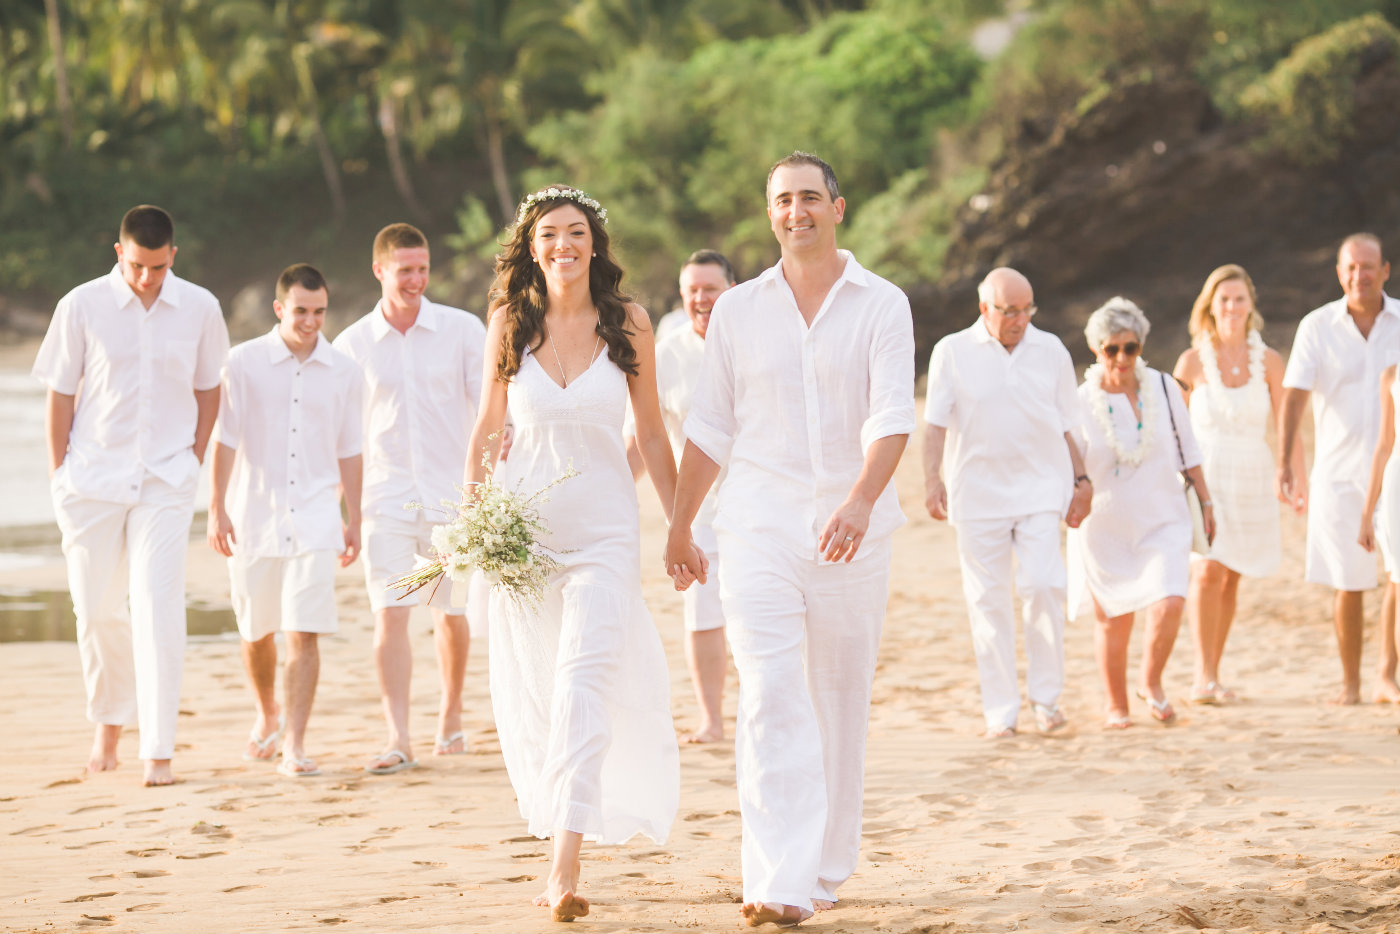 http://sites-content.showitfast.com/37803/39638/maui_weddings_005.jpg